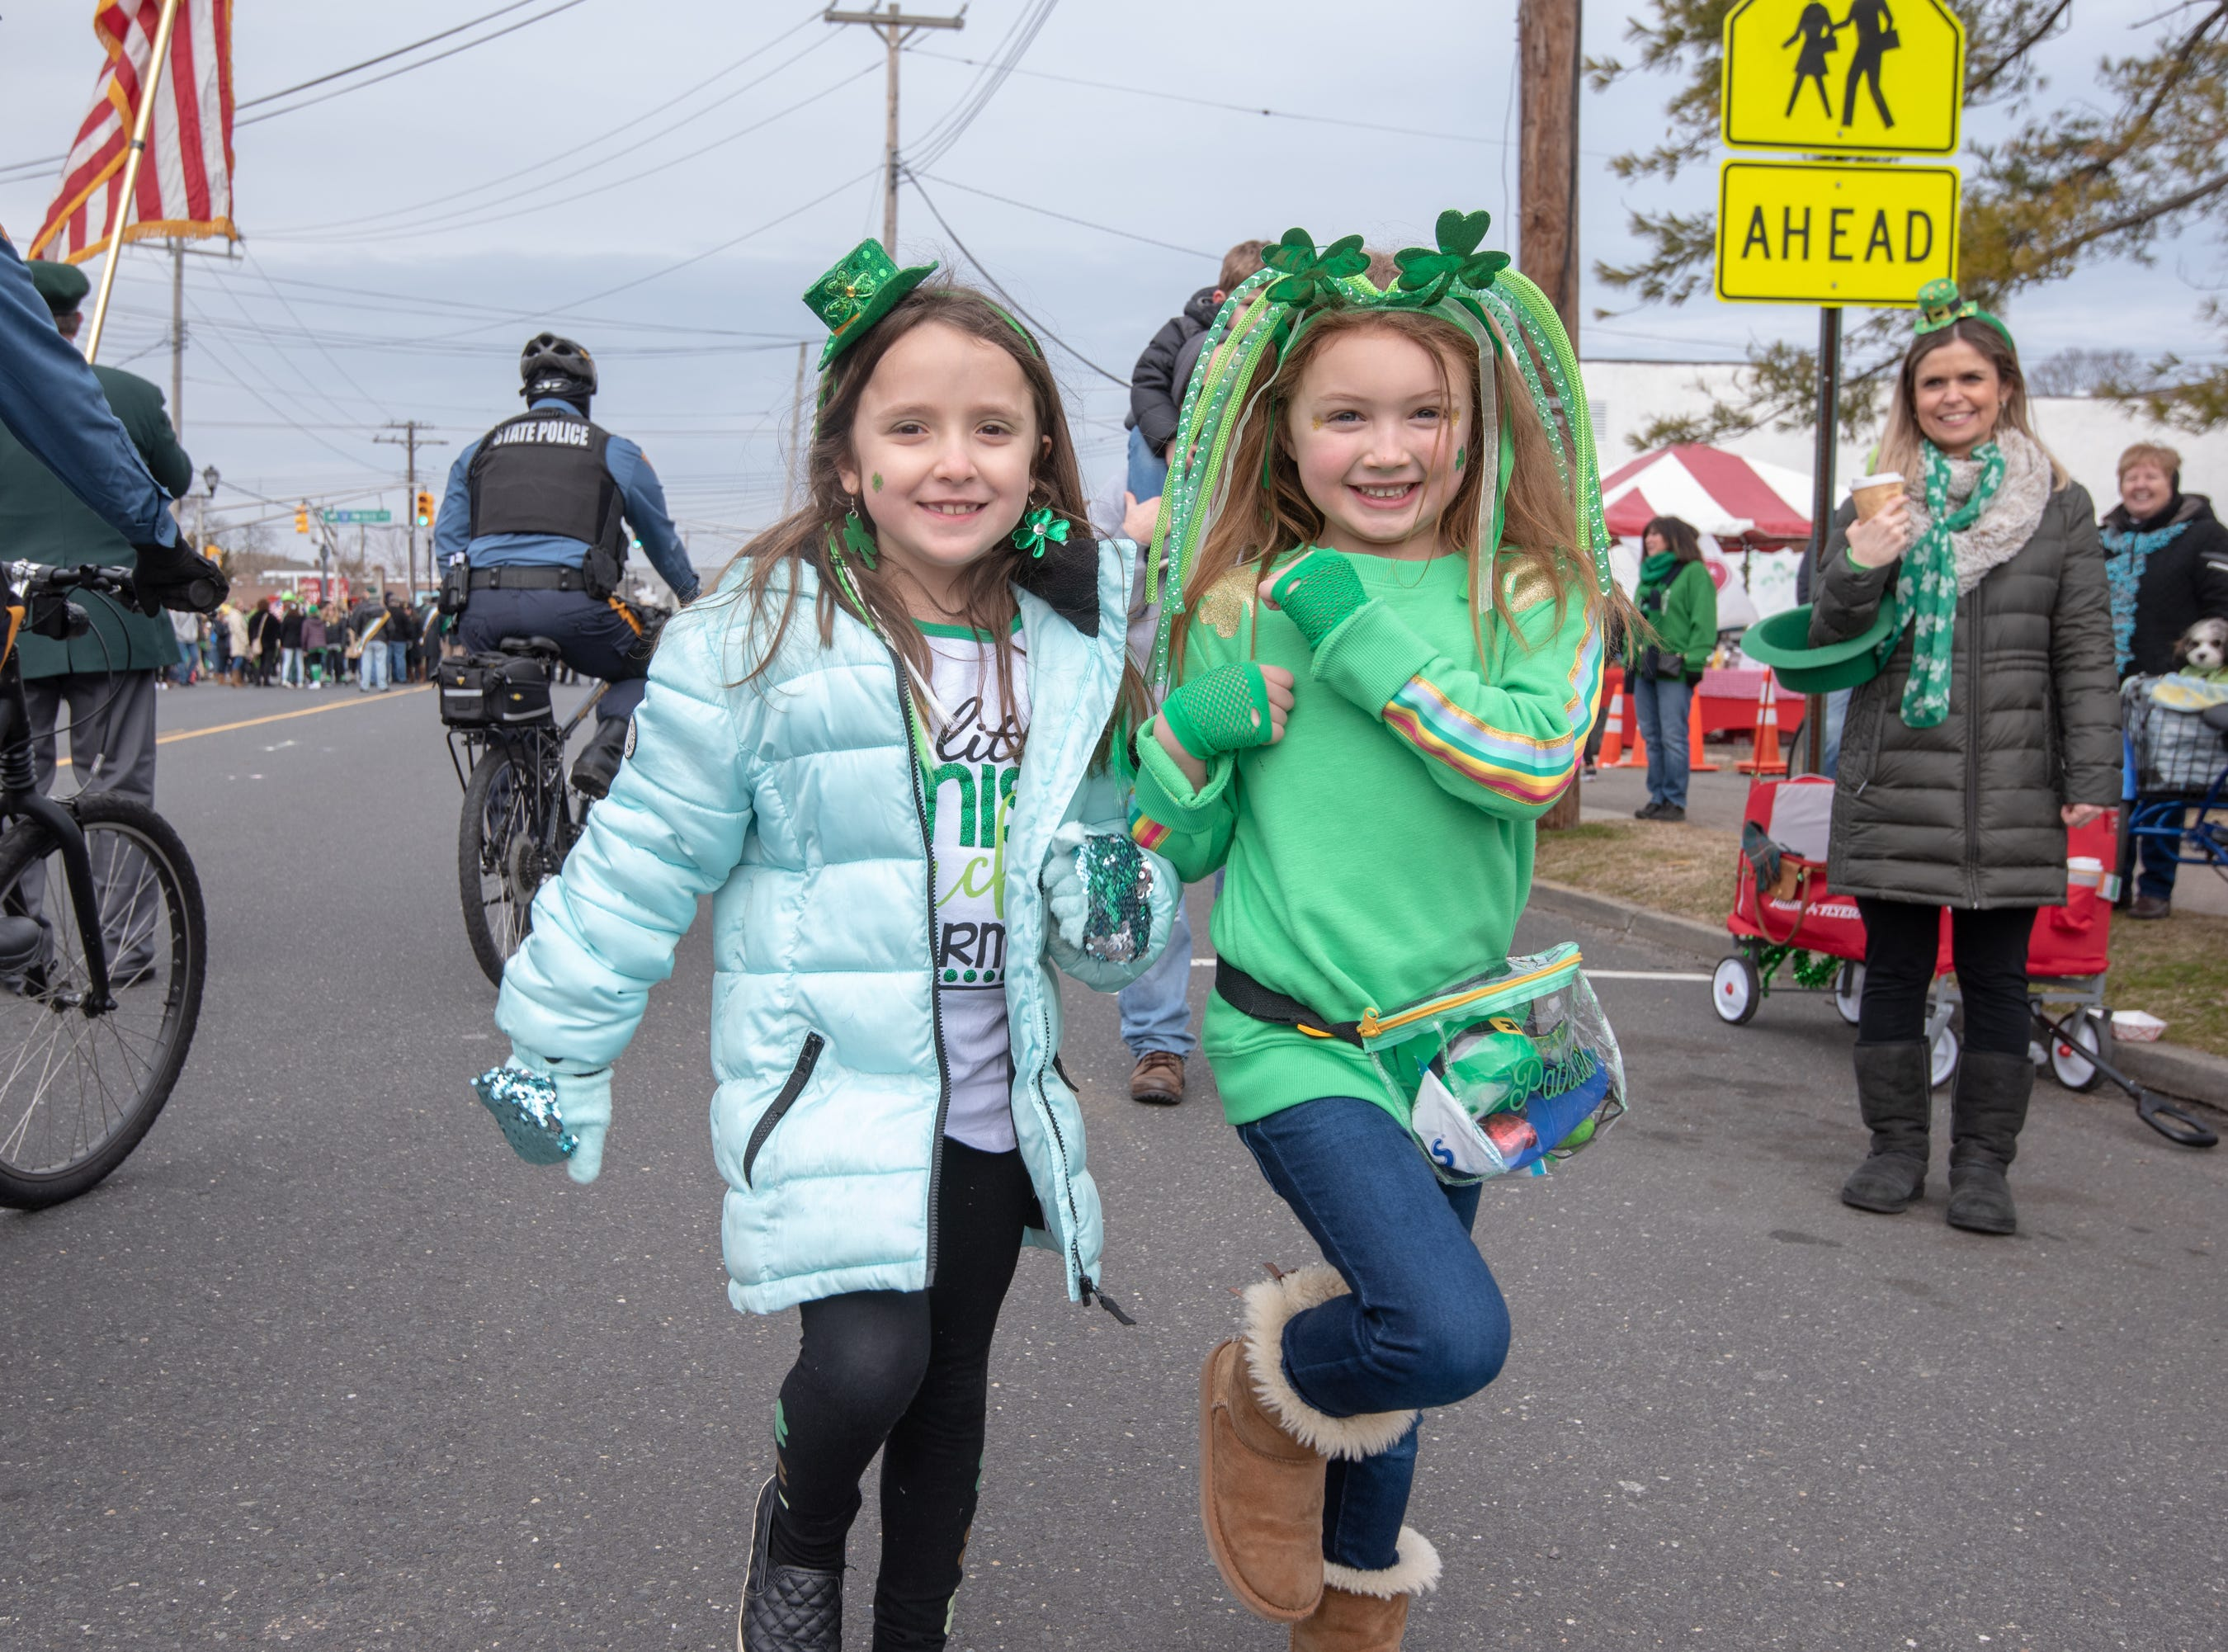 Grace Villa (left) and Isla McGarry, both 7 and of Howell, mimic the marchers. The 46th annual Belmar/Lake Como St. Patrick's Day Parade was held in Belmar on March 3, 2019.